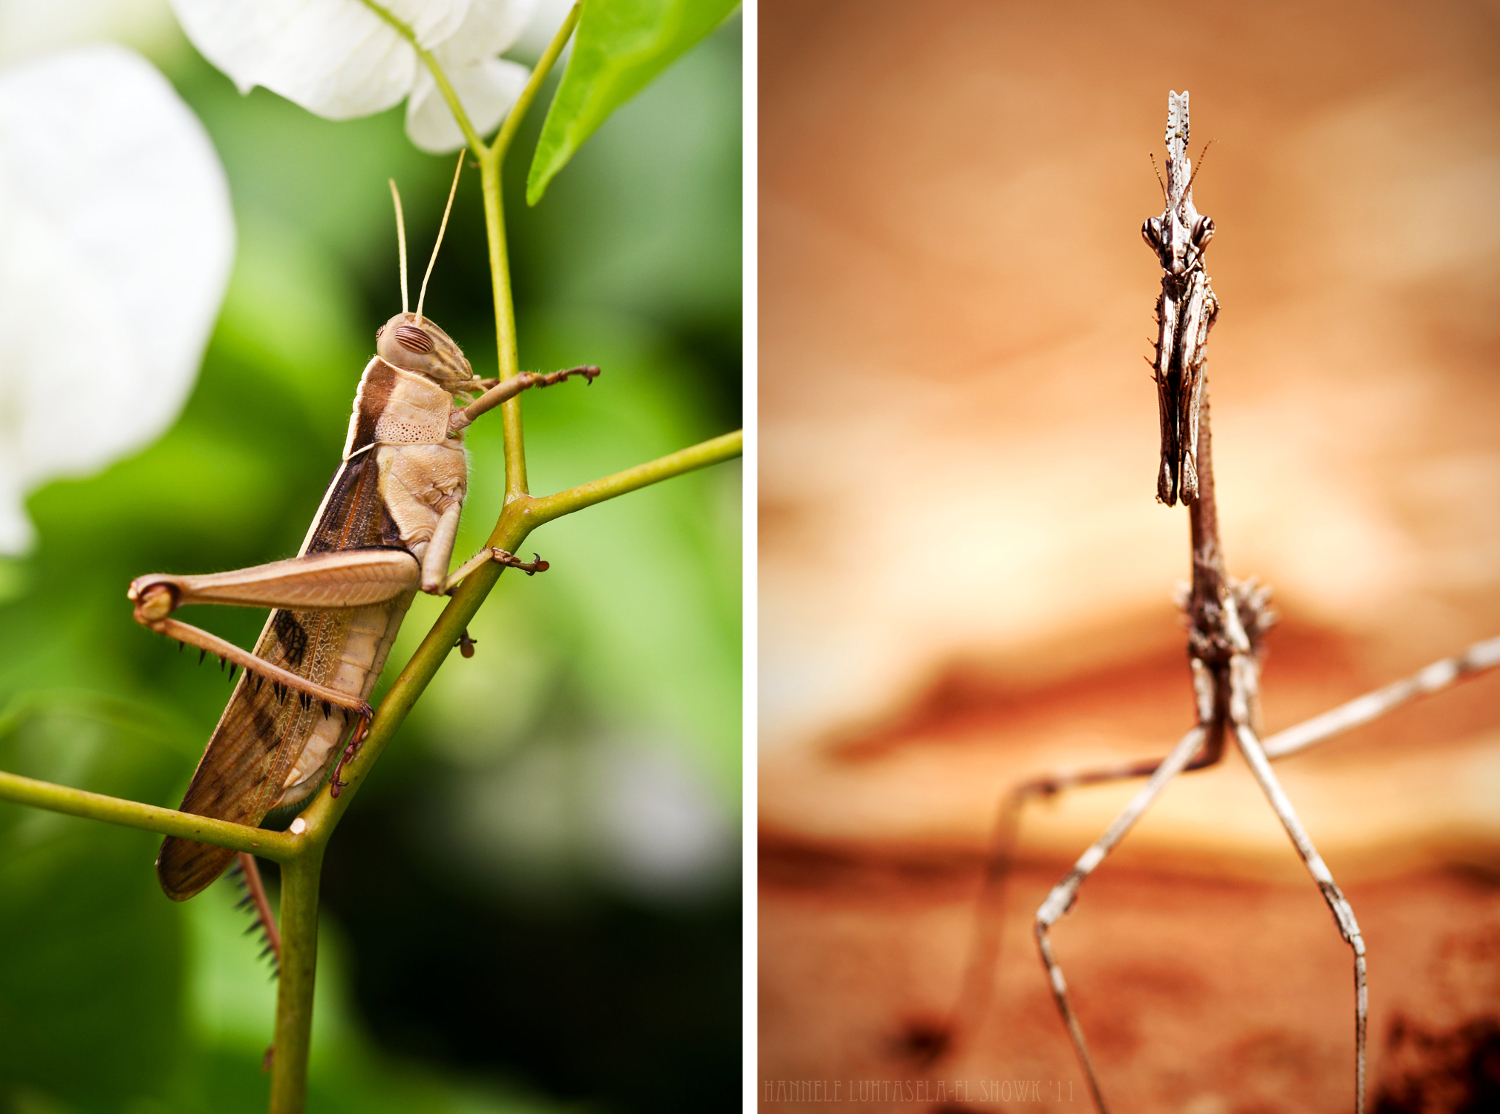 Insect photography: locust and mantis. Insect Photography Tips